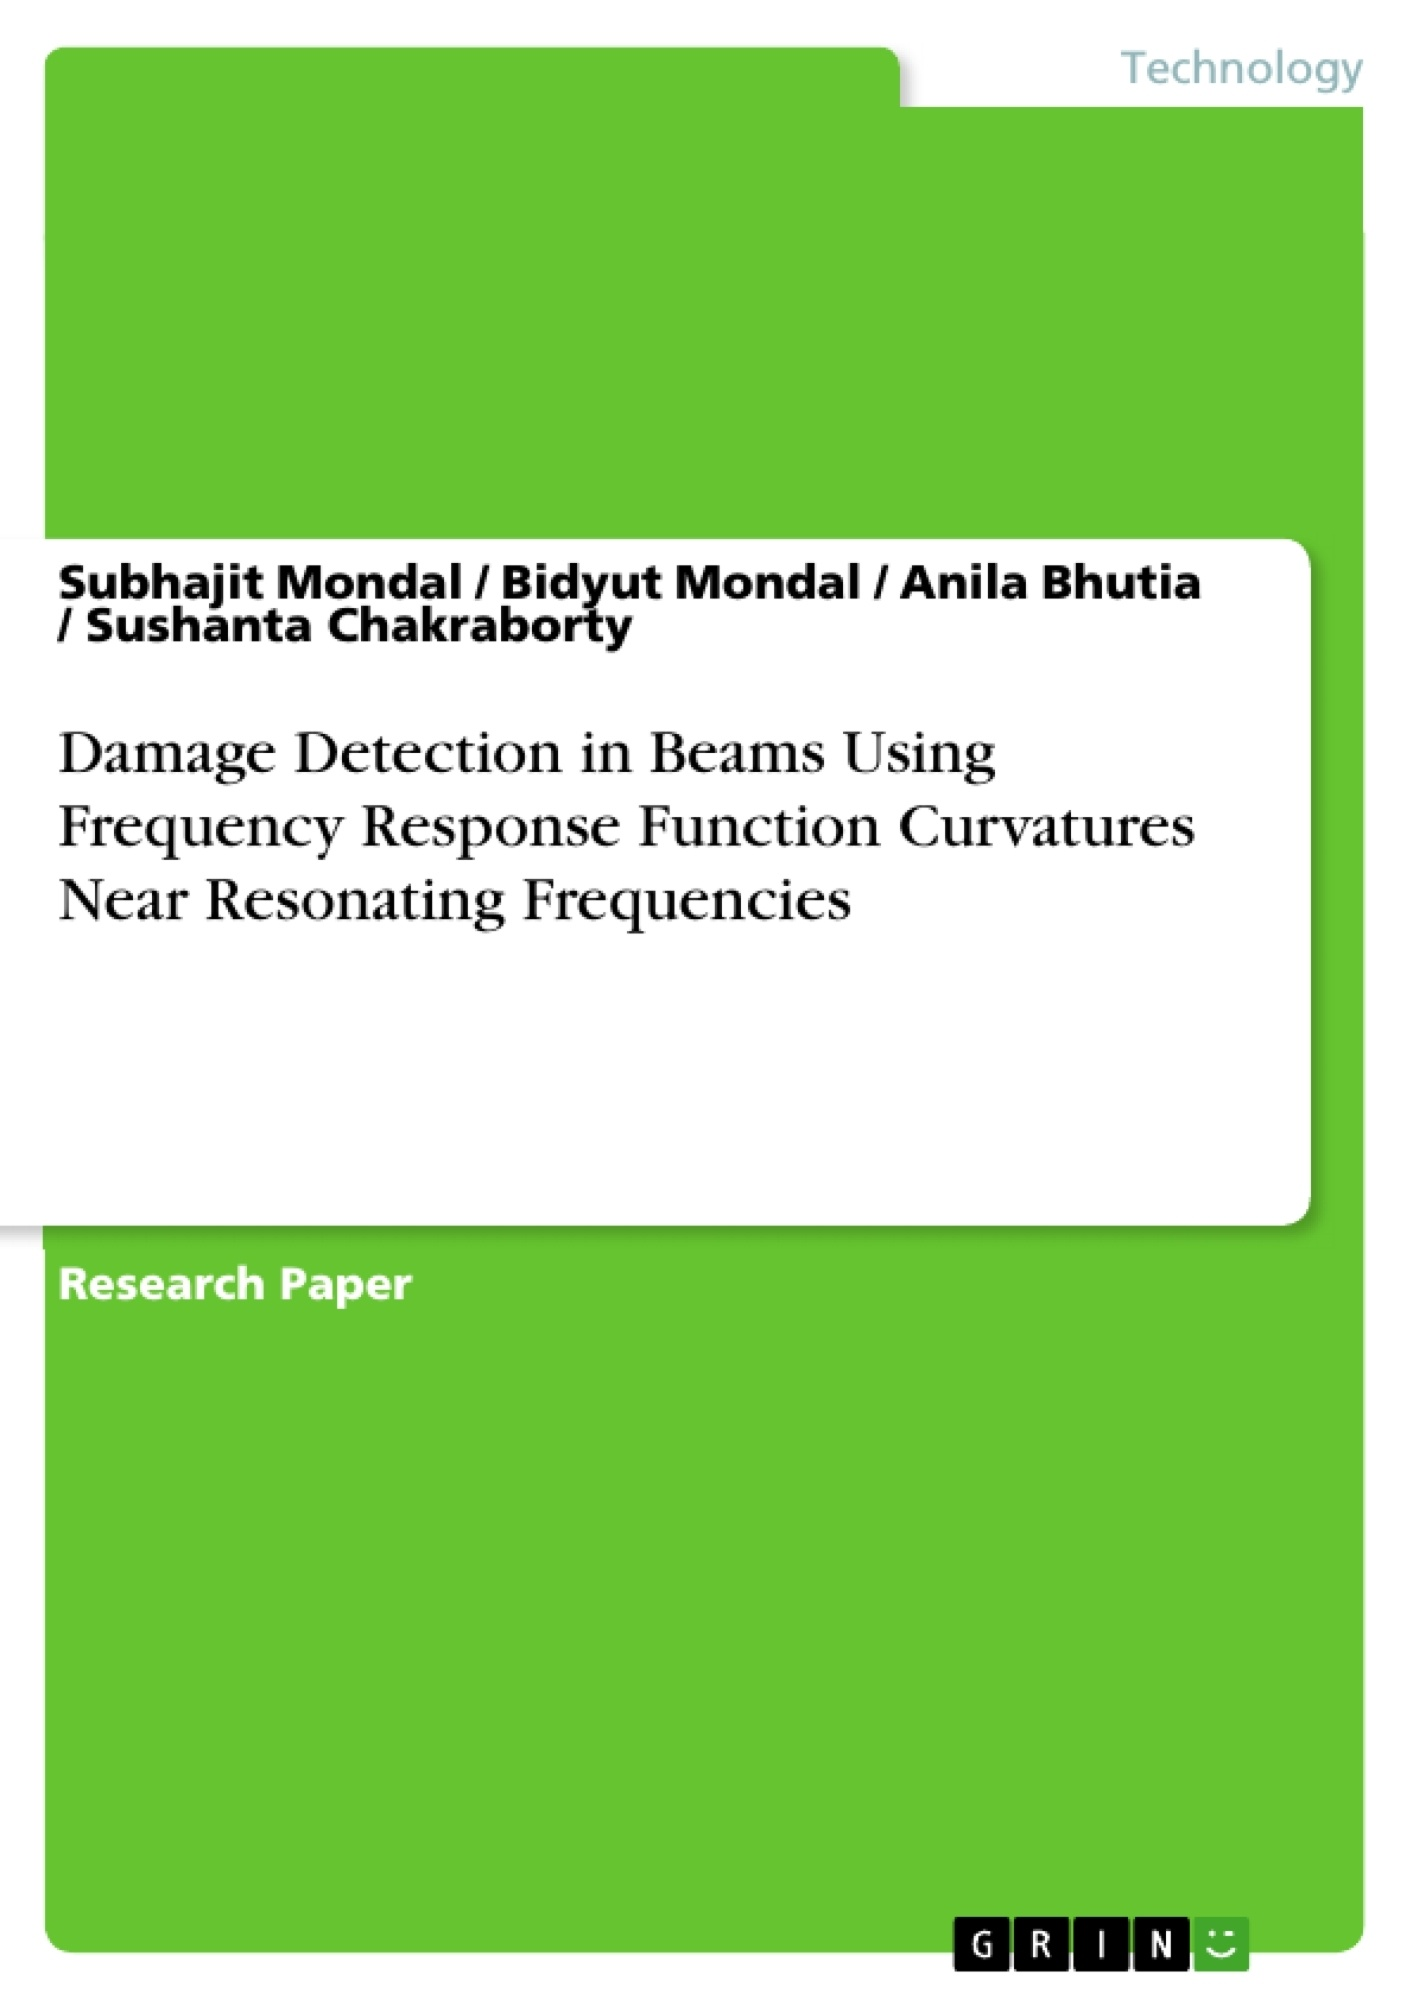 Title: Damage Detection in Beams Using Frequency Response Function Curvatures Near Resonating Frequencies